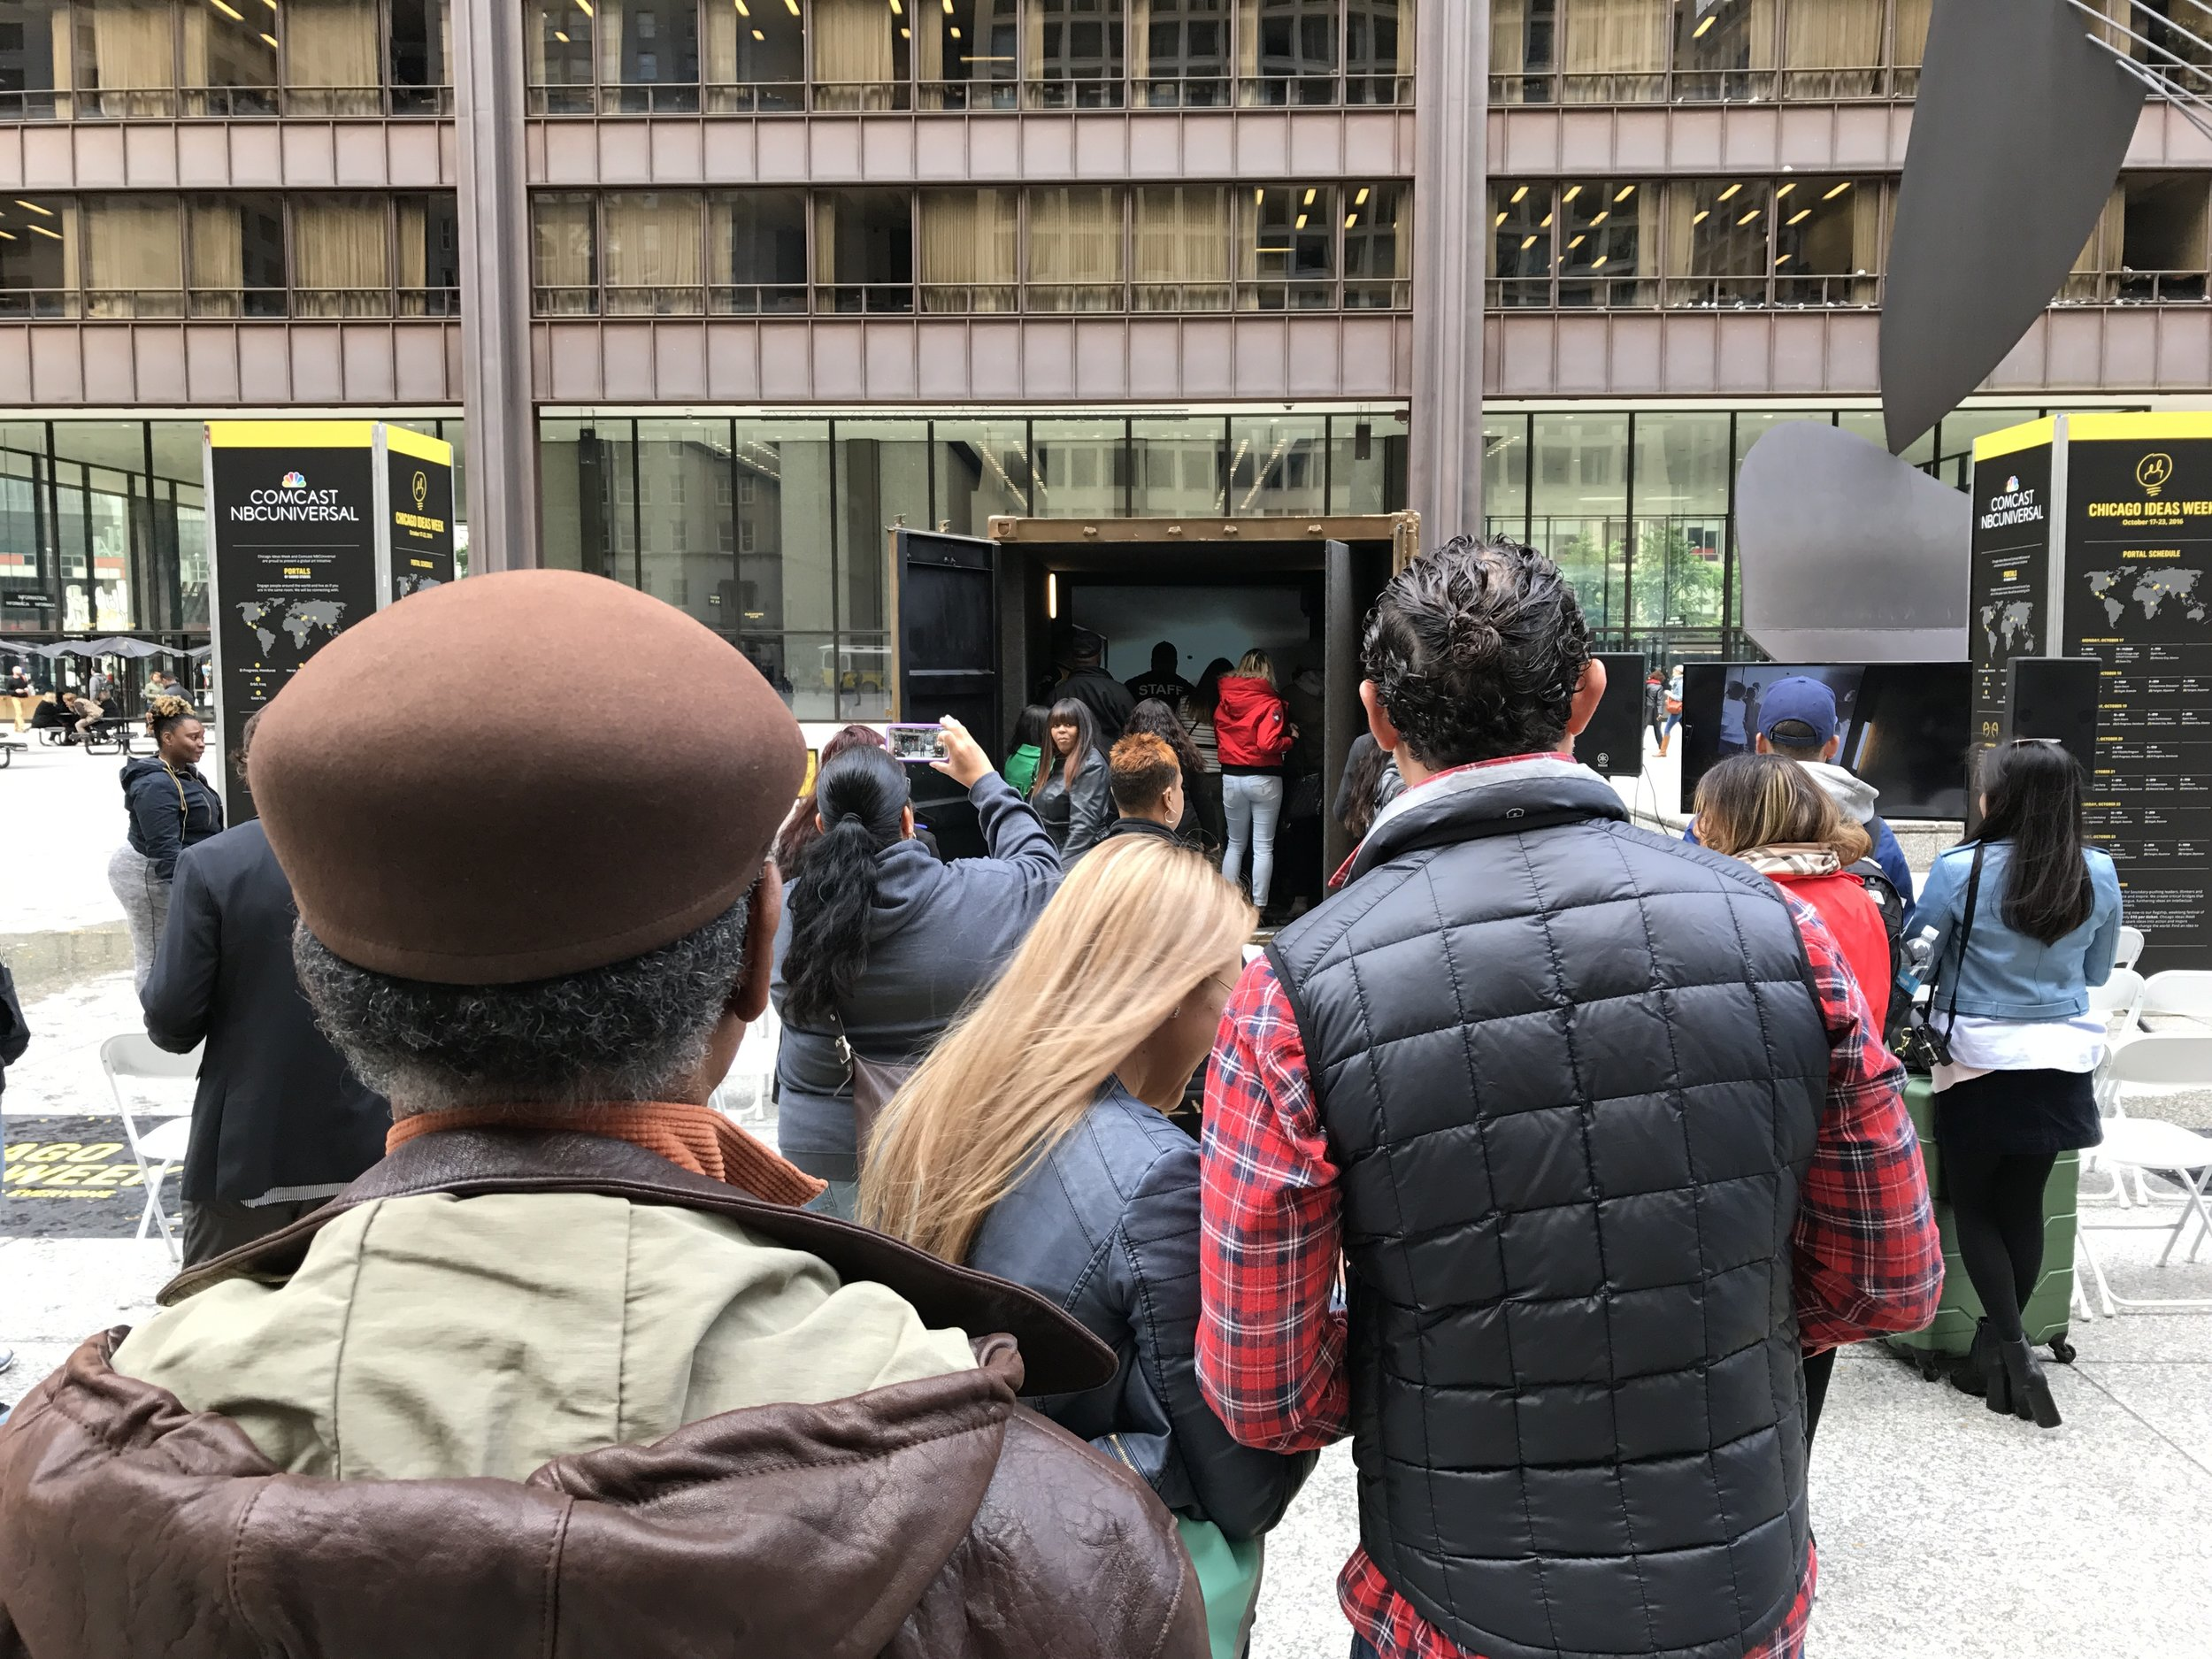 An audience gathers in Chicago to watch Rick perform with Mexico City.